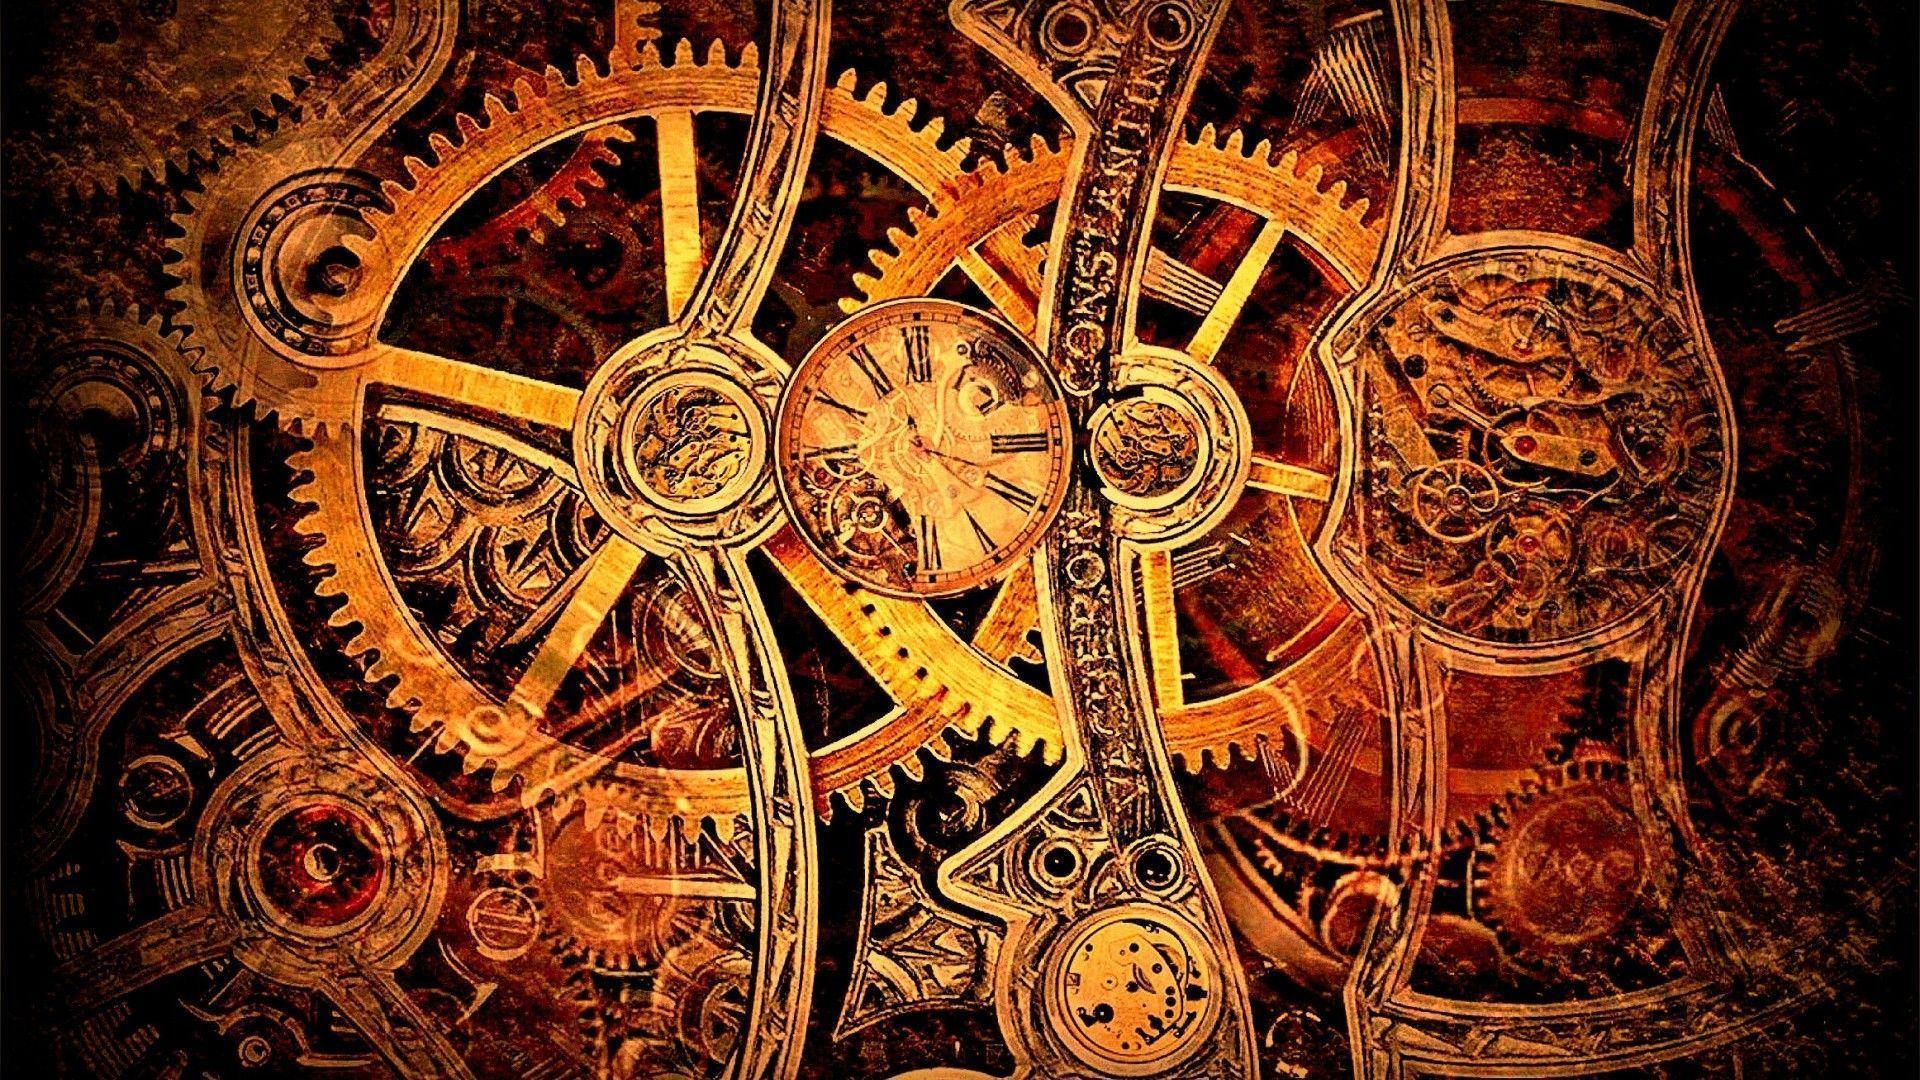 75 Steampunk Wallpaper Hd On Wallpapersafari